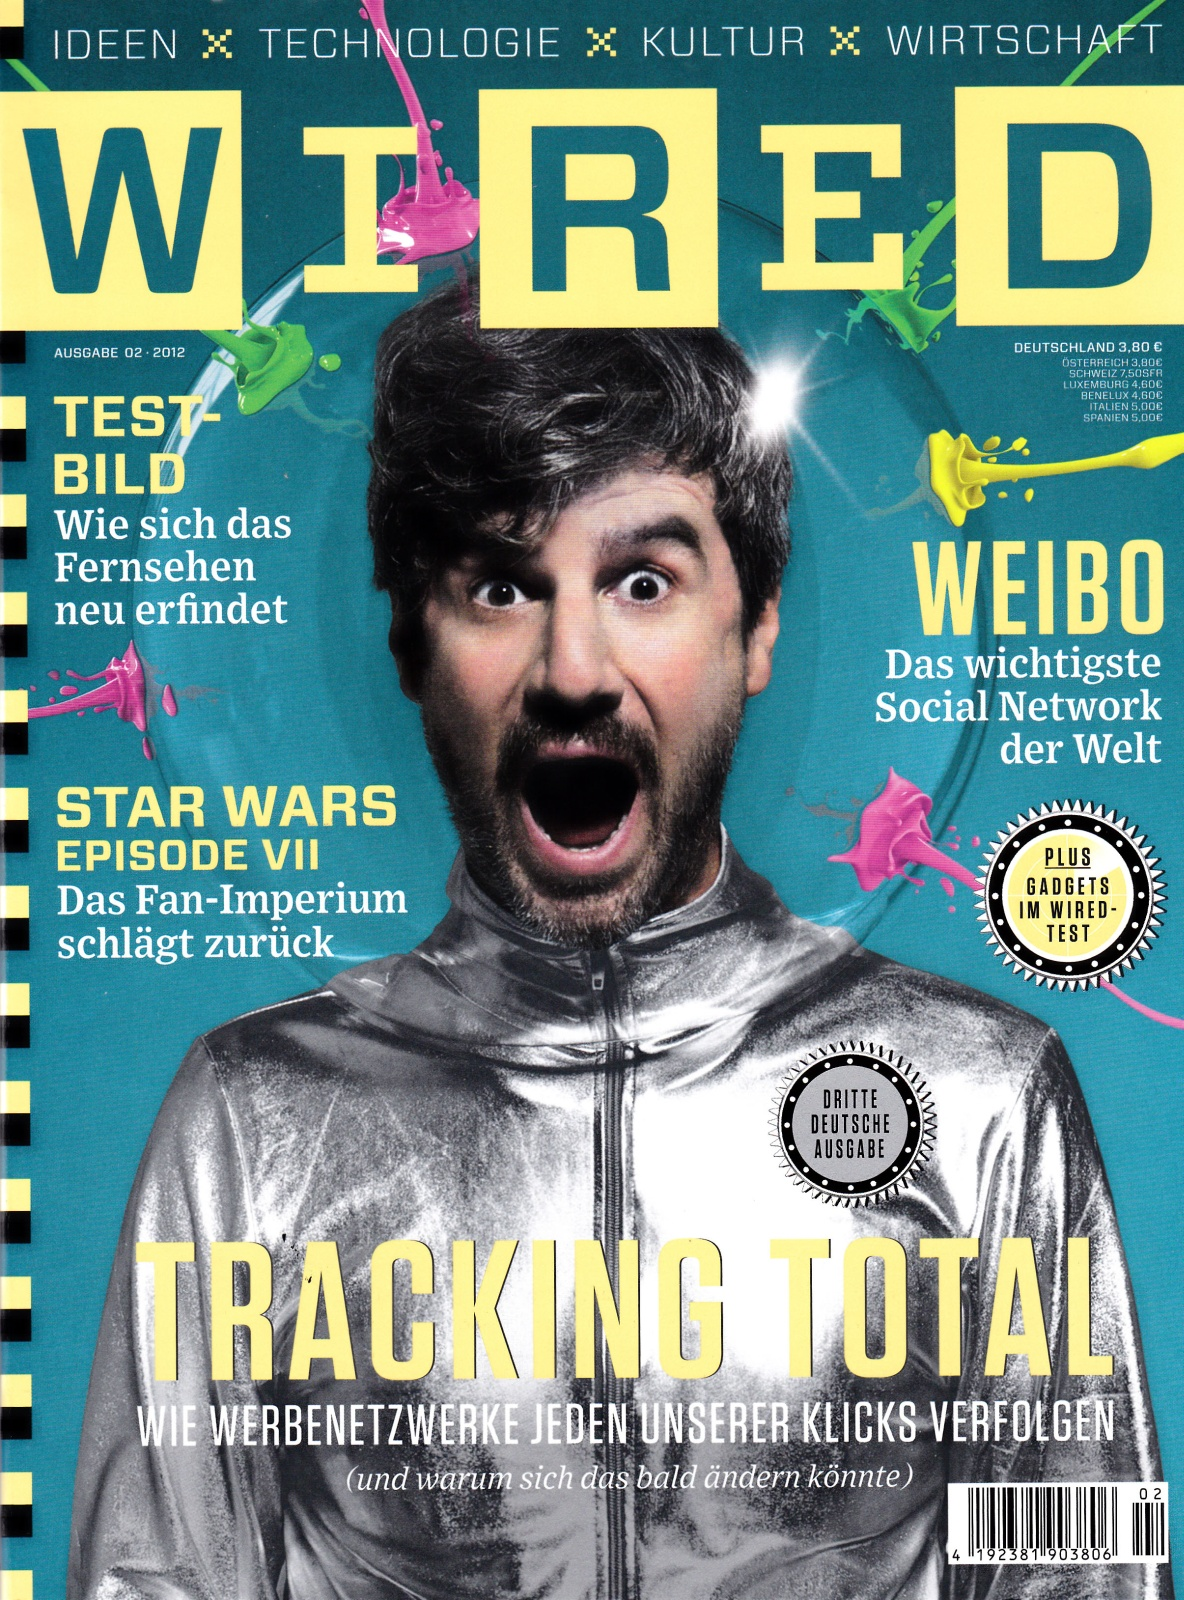 Wired Magazine Covers | Gomma Wired Magazine Puts Munk Telonius On Cover